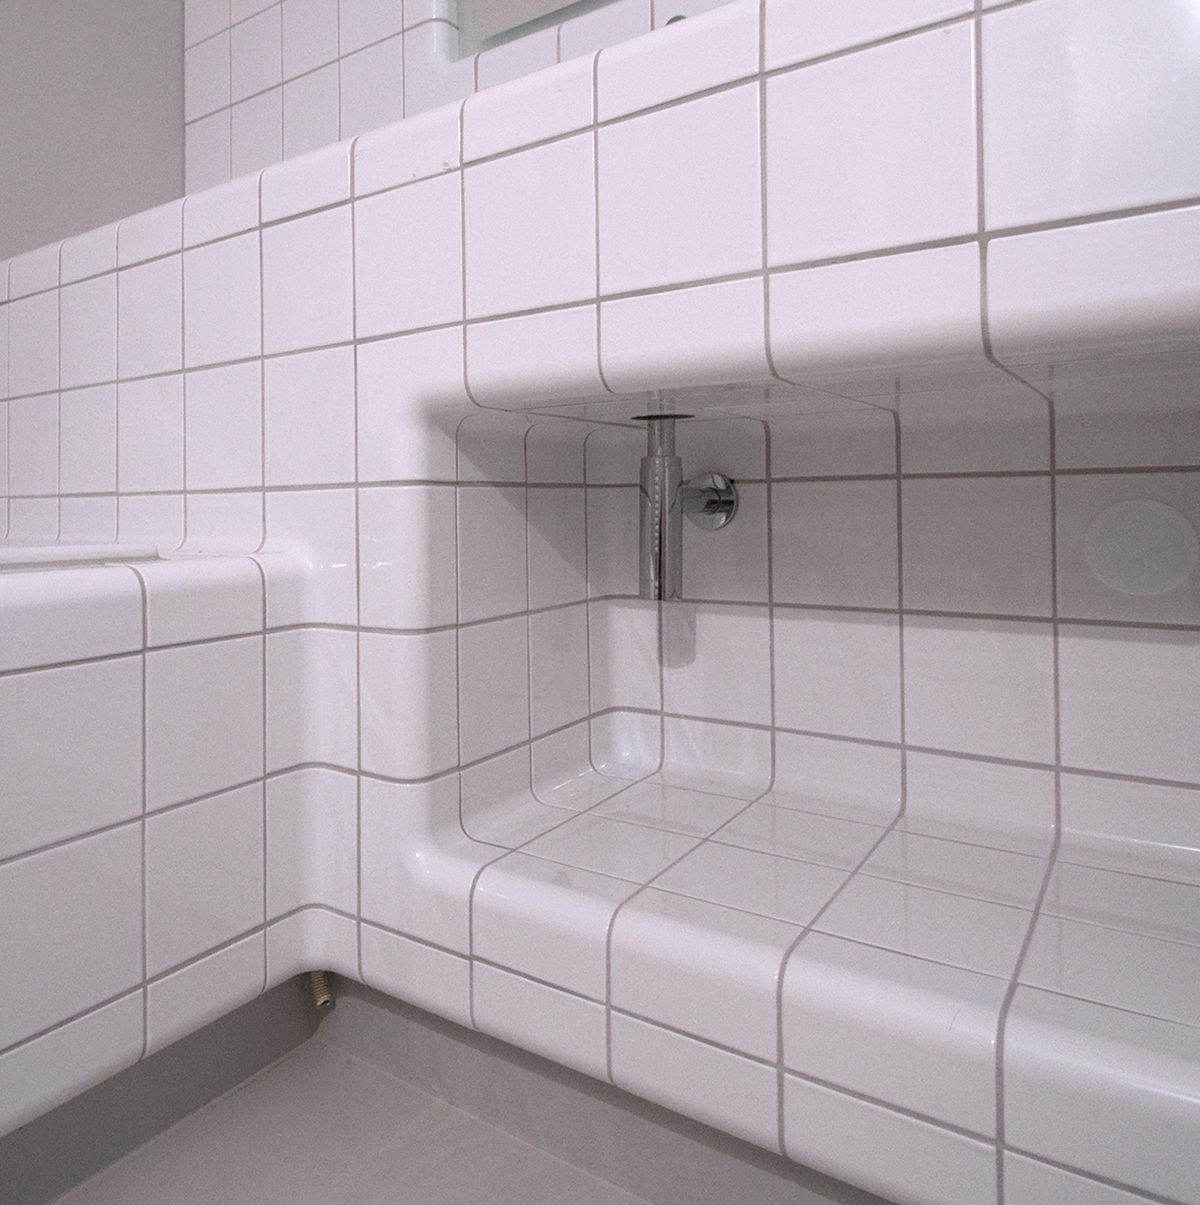 tiled bathroom furniture, modern design functional tiles available in 20 colors